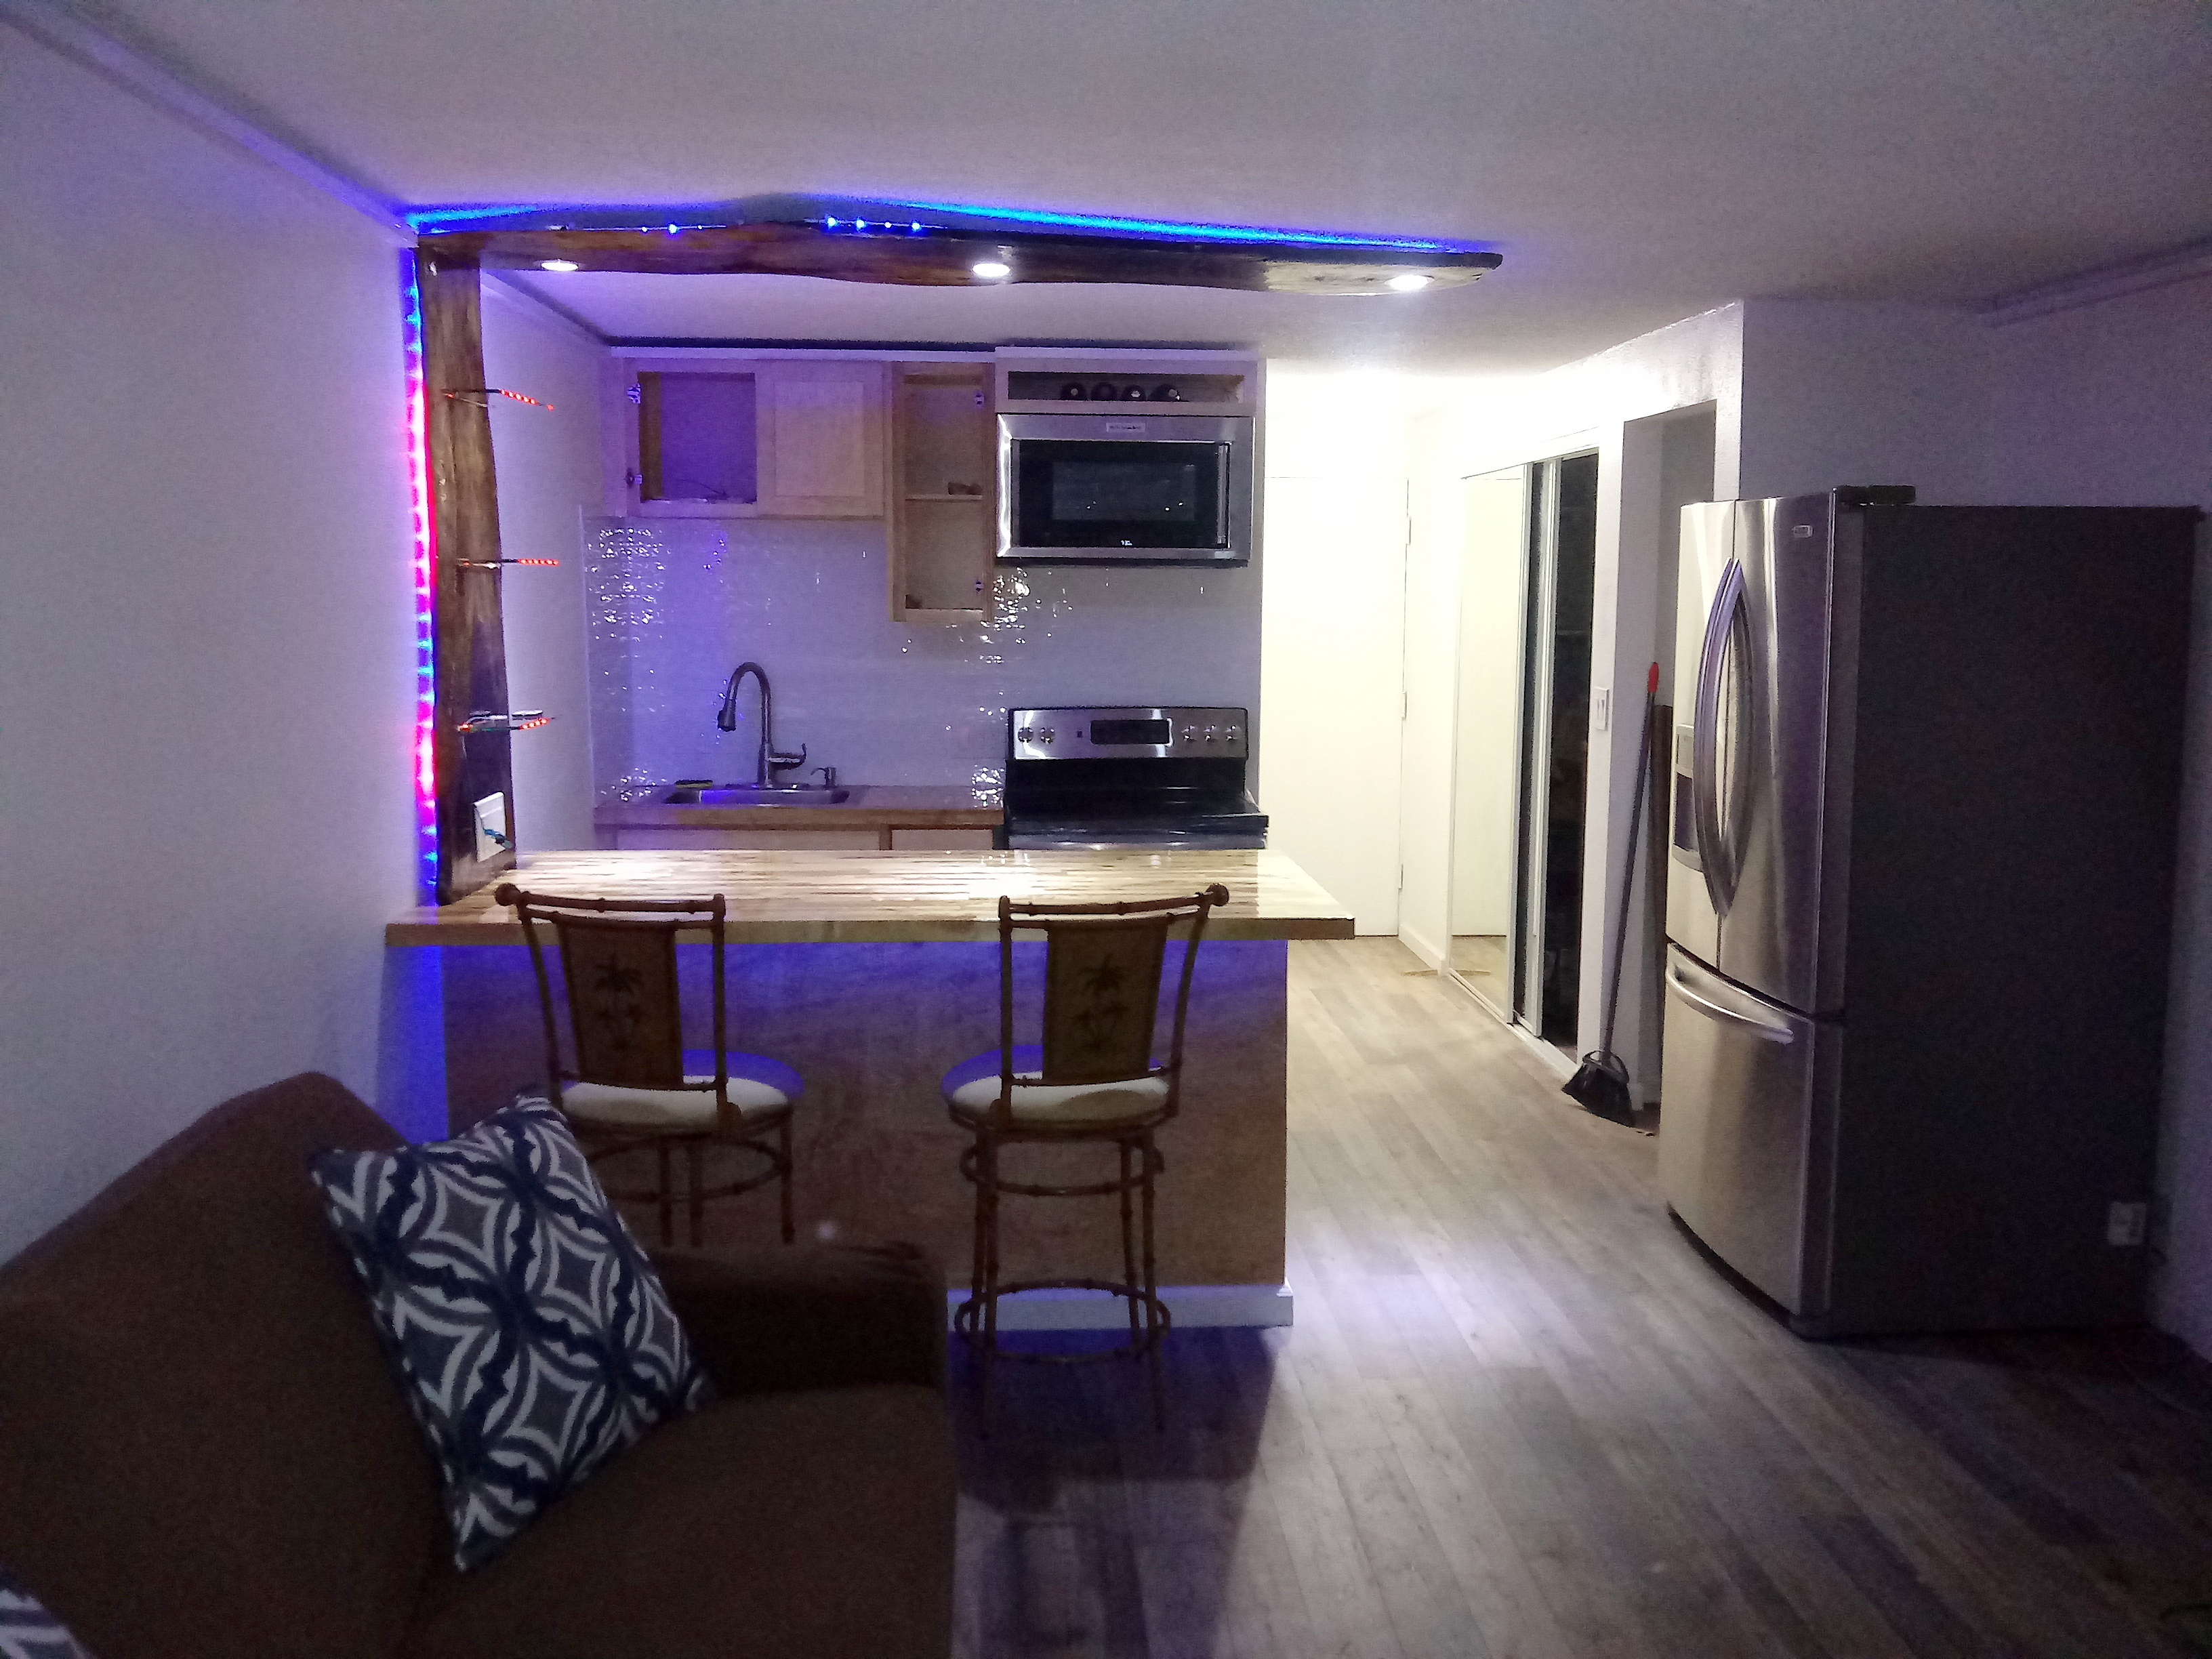 Est. $900.00 / Month* for rent in Waianae, HI